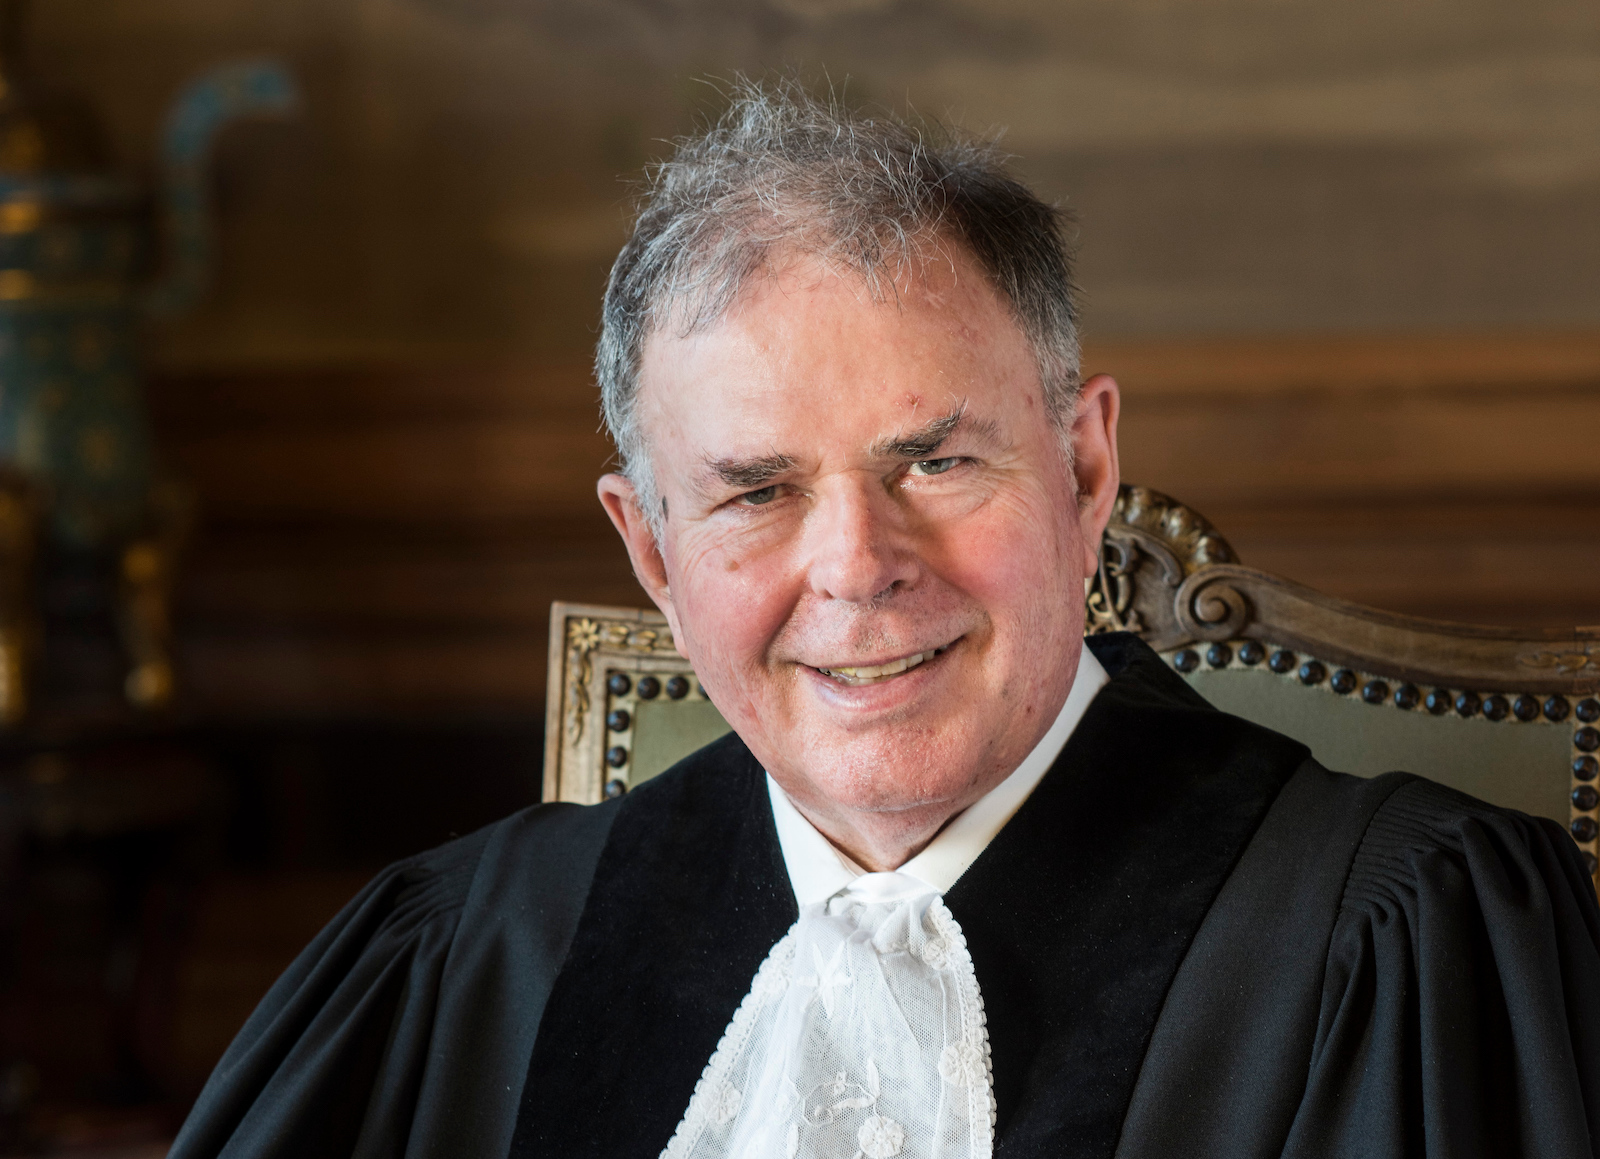 Judge James Richard Crawford, Member of the International Court of Justice from 2015, until his death on Monday (UN Photo/ICJ-PCJ)